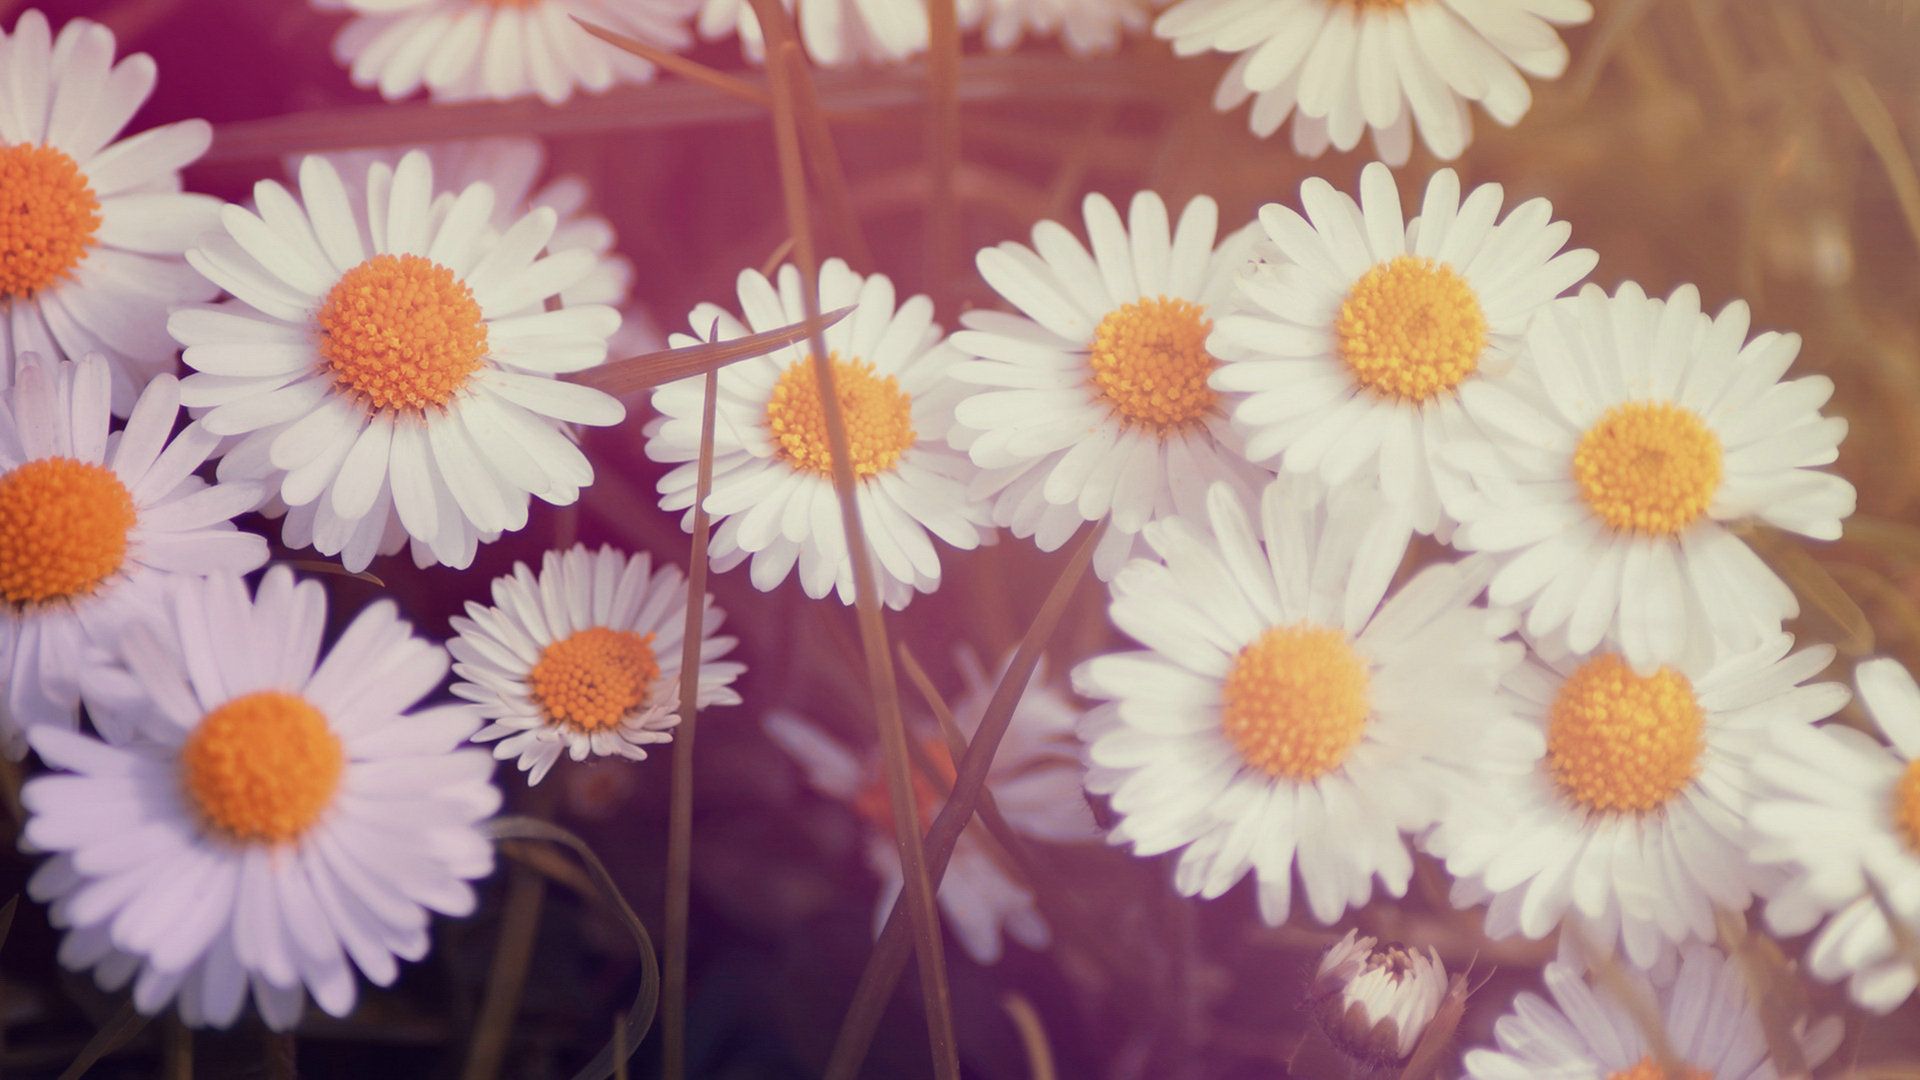 Images of wallpaper tumblr flower spacehero vintage flower wallpapers tumblr 34 wallpapers izmirmasajfo